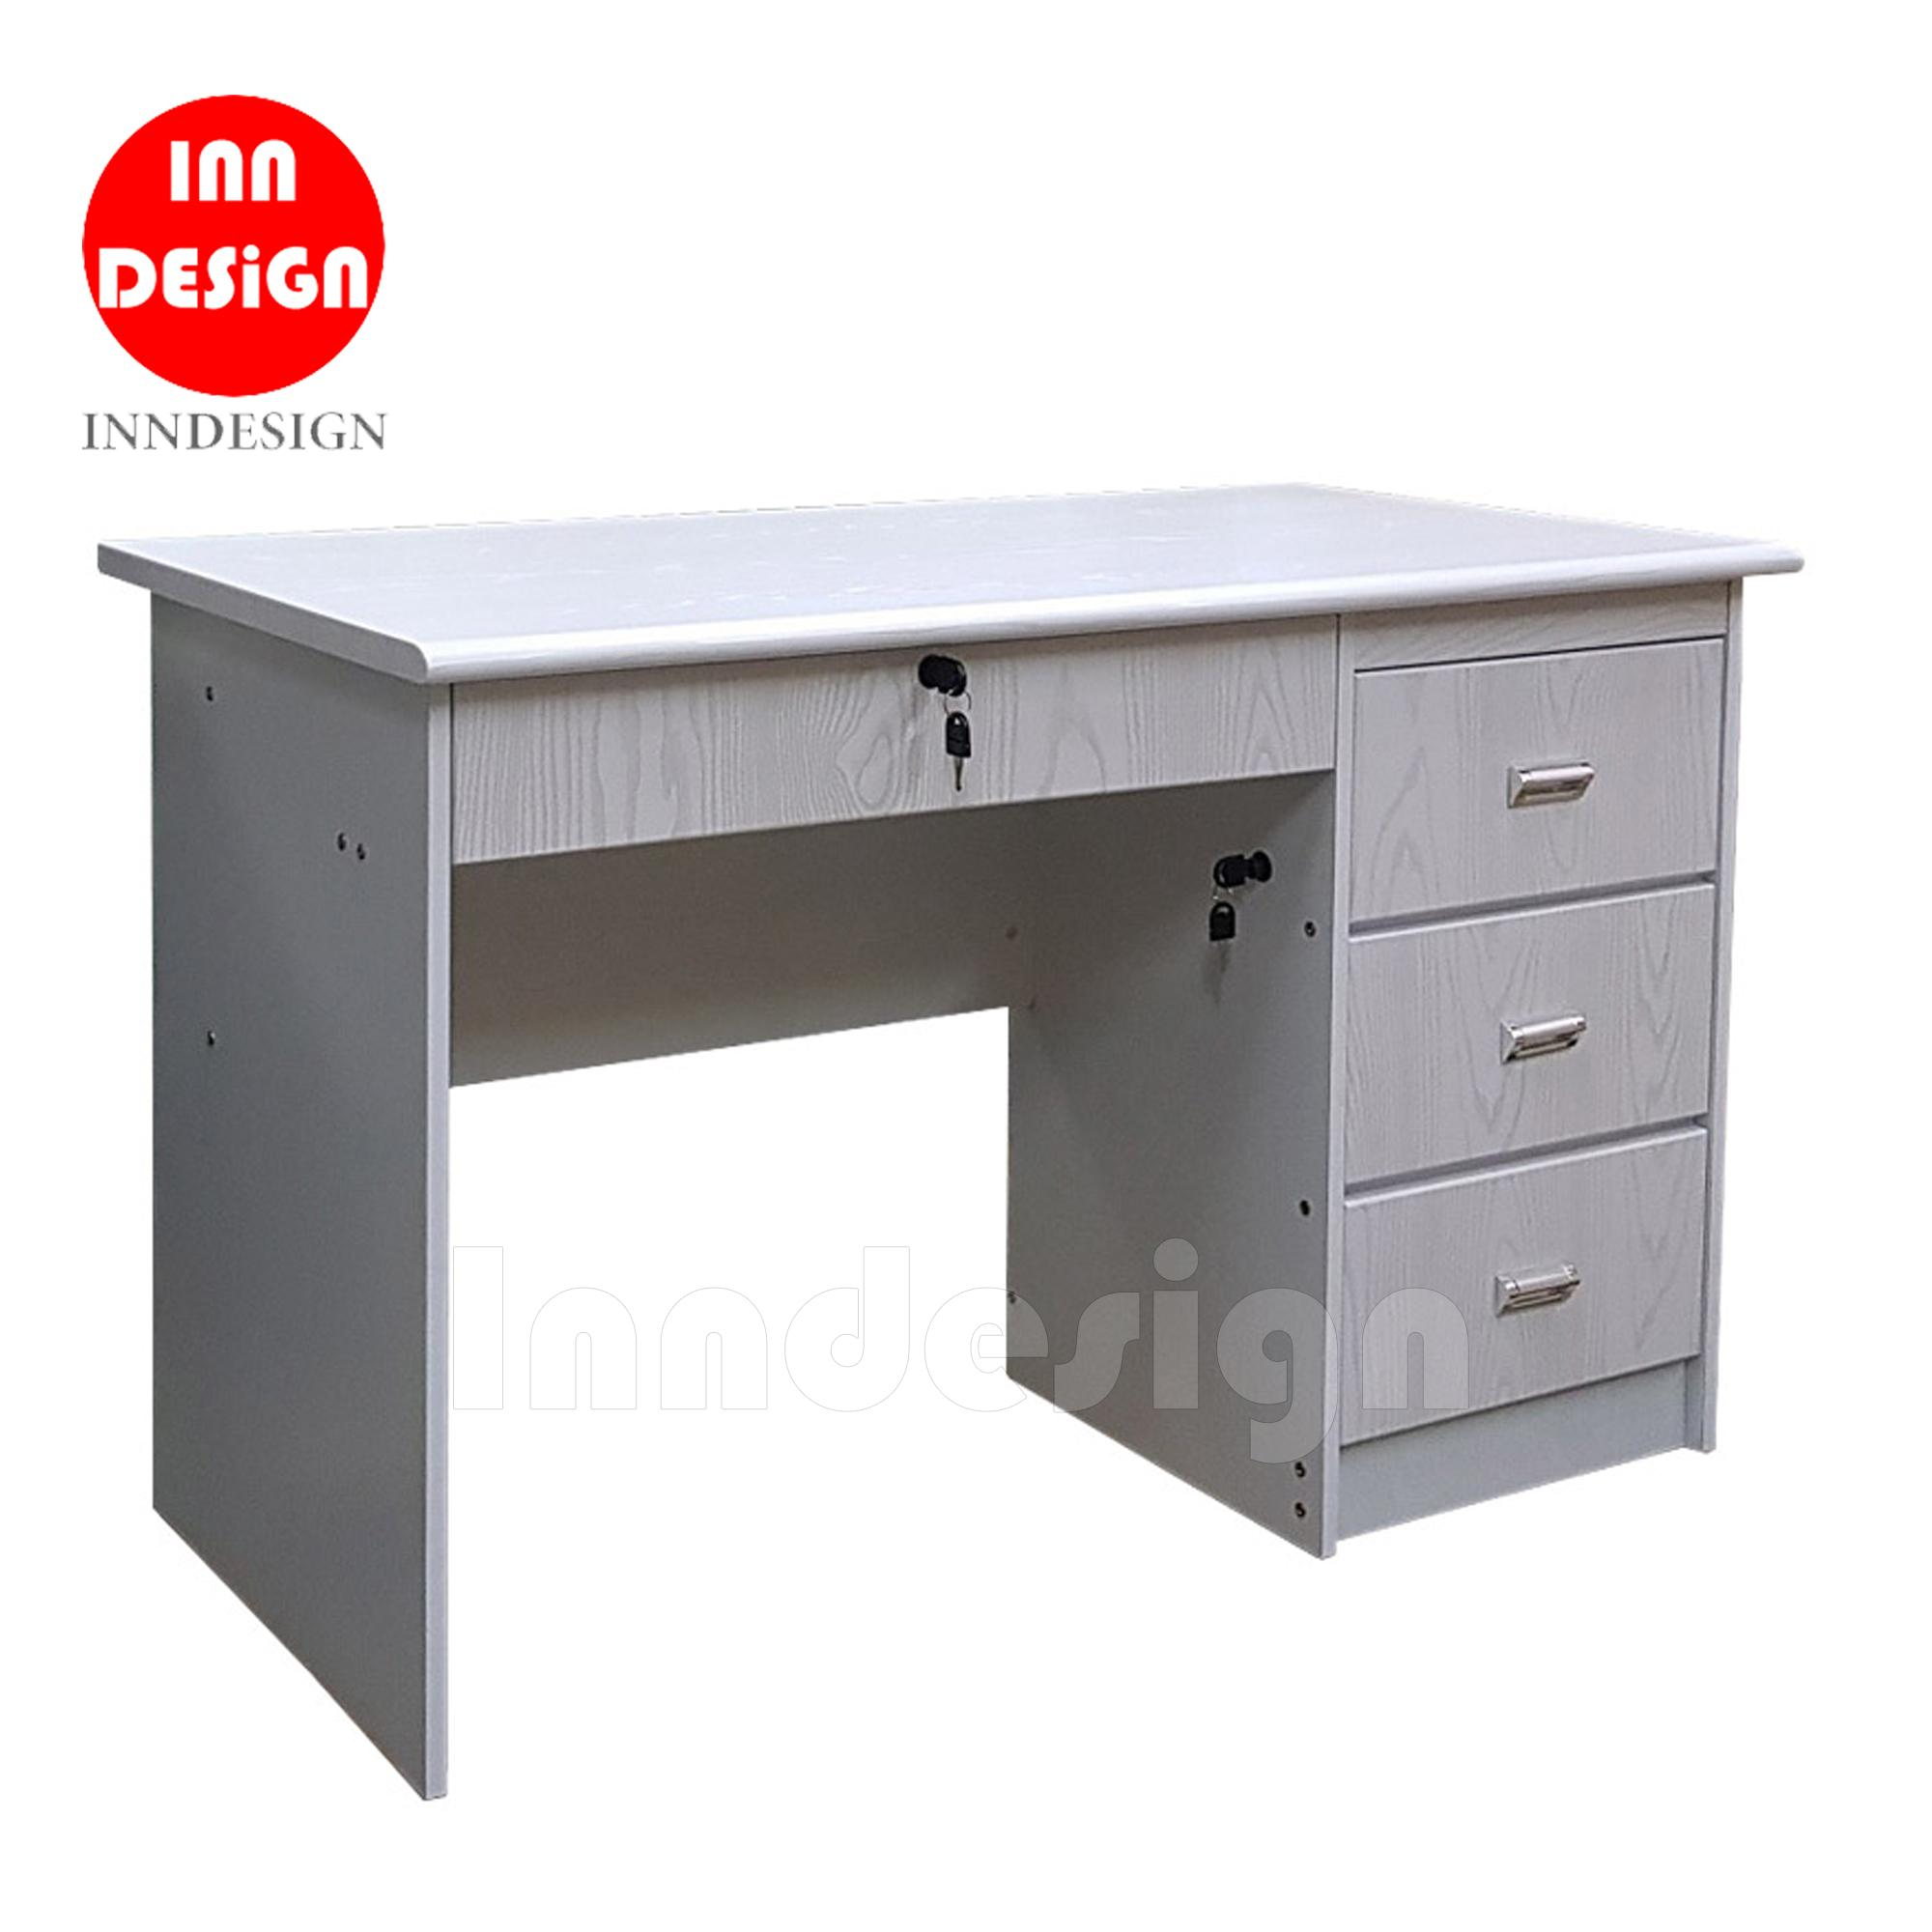 Posland Study Table/Office Table  L120cm  [Free Delivery+Installation]